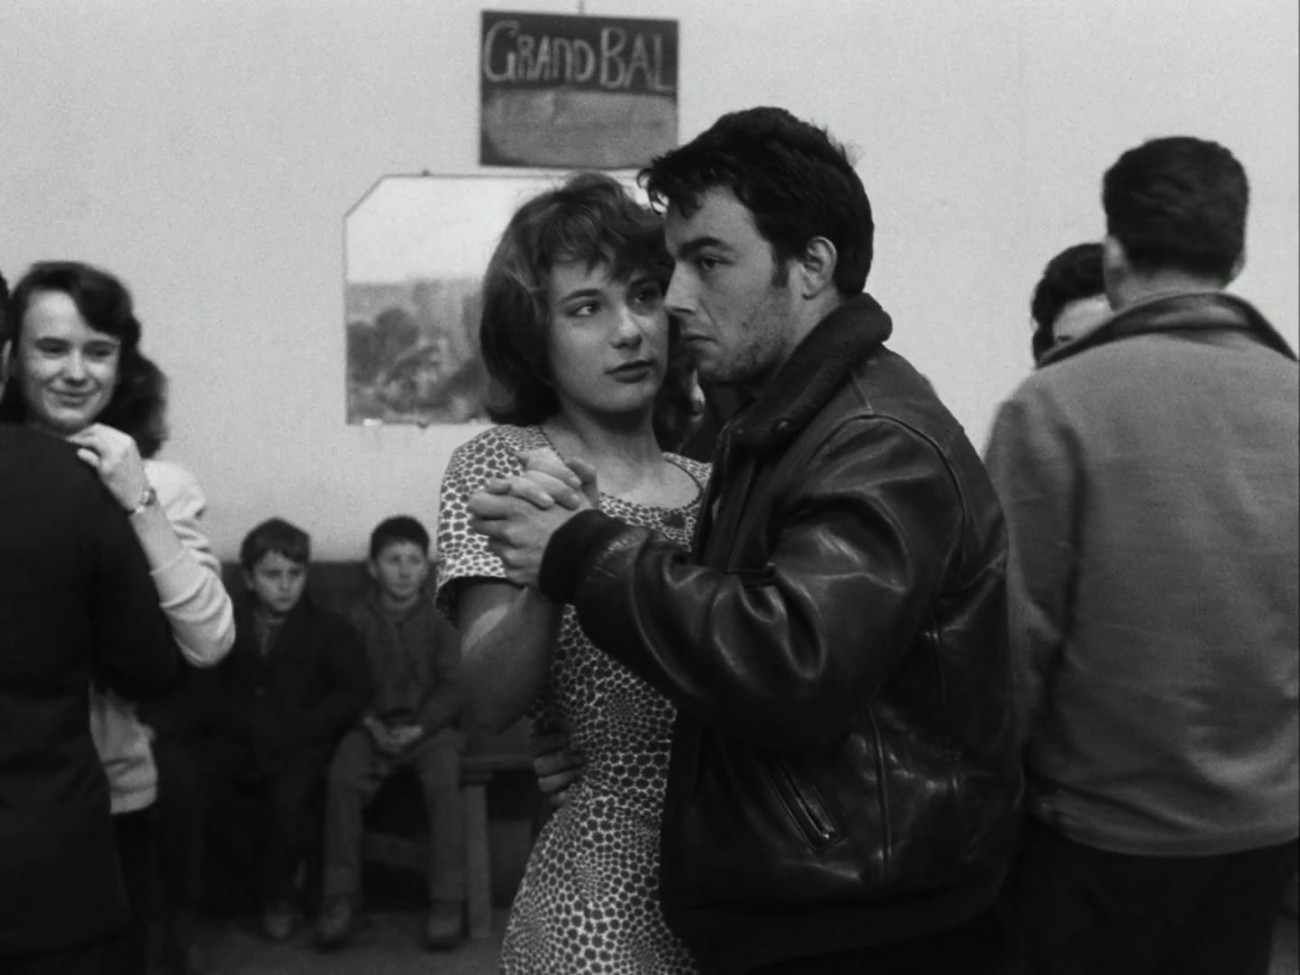 Le.Beau.Serge.1958.1080p.BluRay.x264-CiNEFiLE.mkv_snapshot_01.10.52_[2011.09.26_10.40.32]